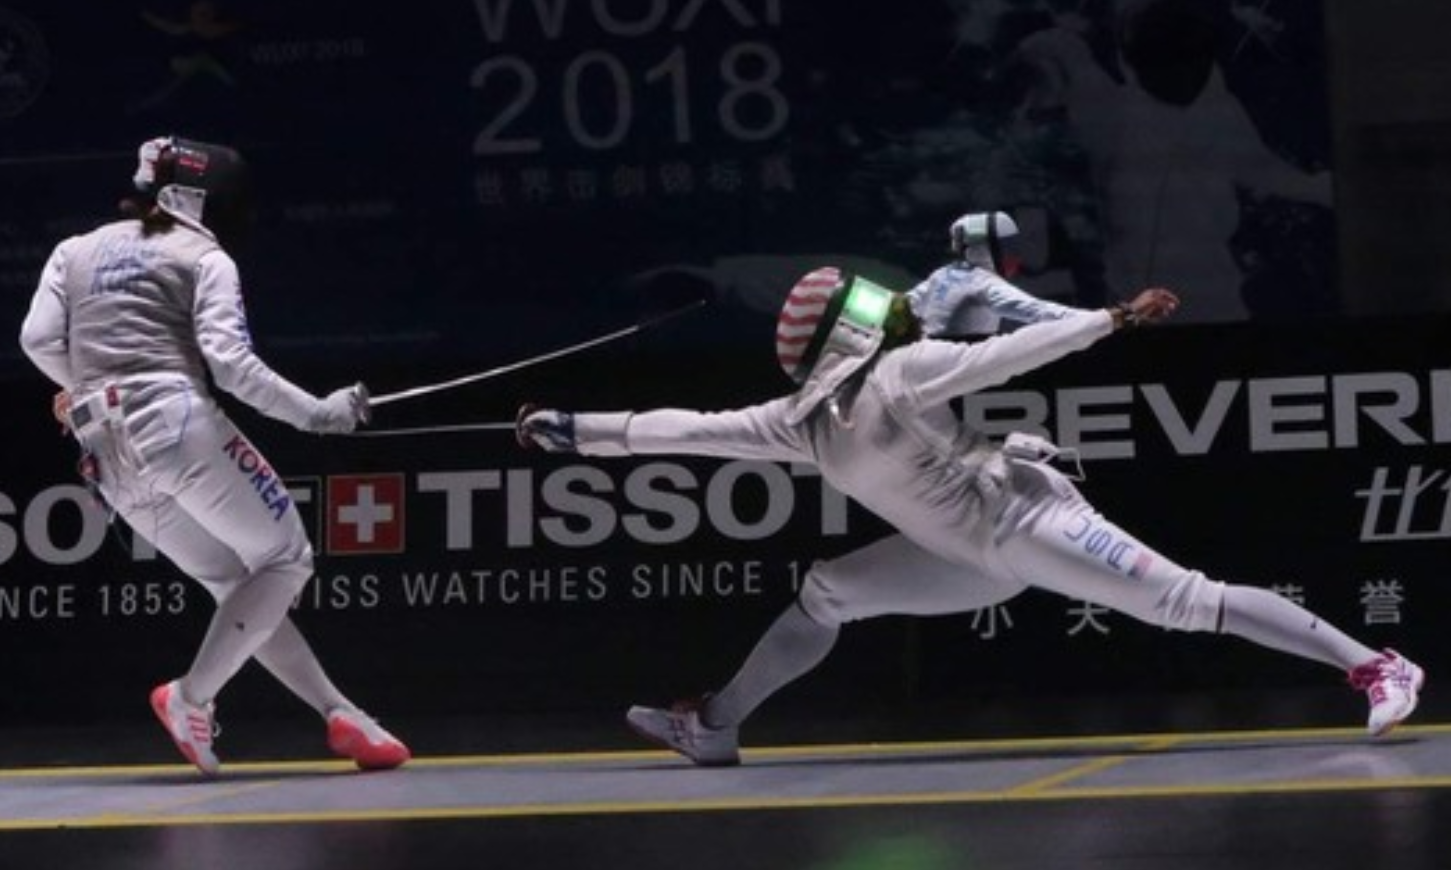 Nzingha Prescod scores and proves to be one of the greatest fencers of all time